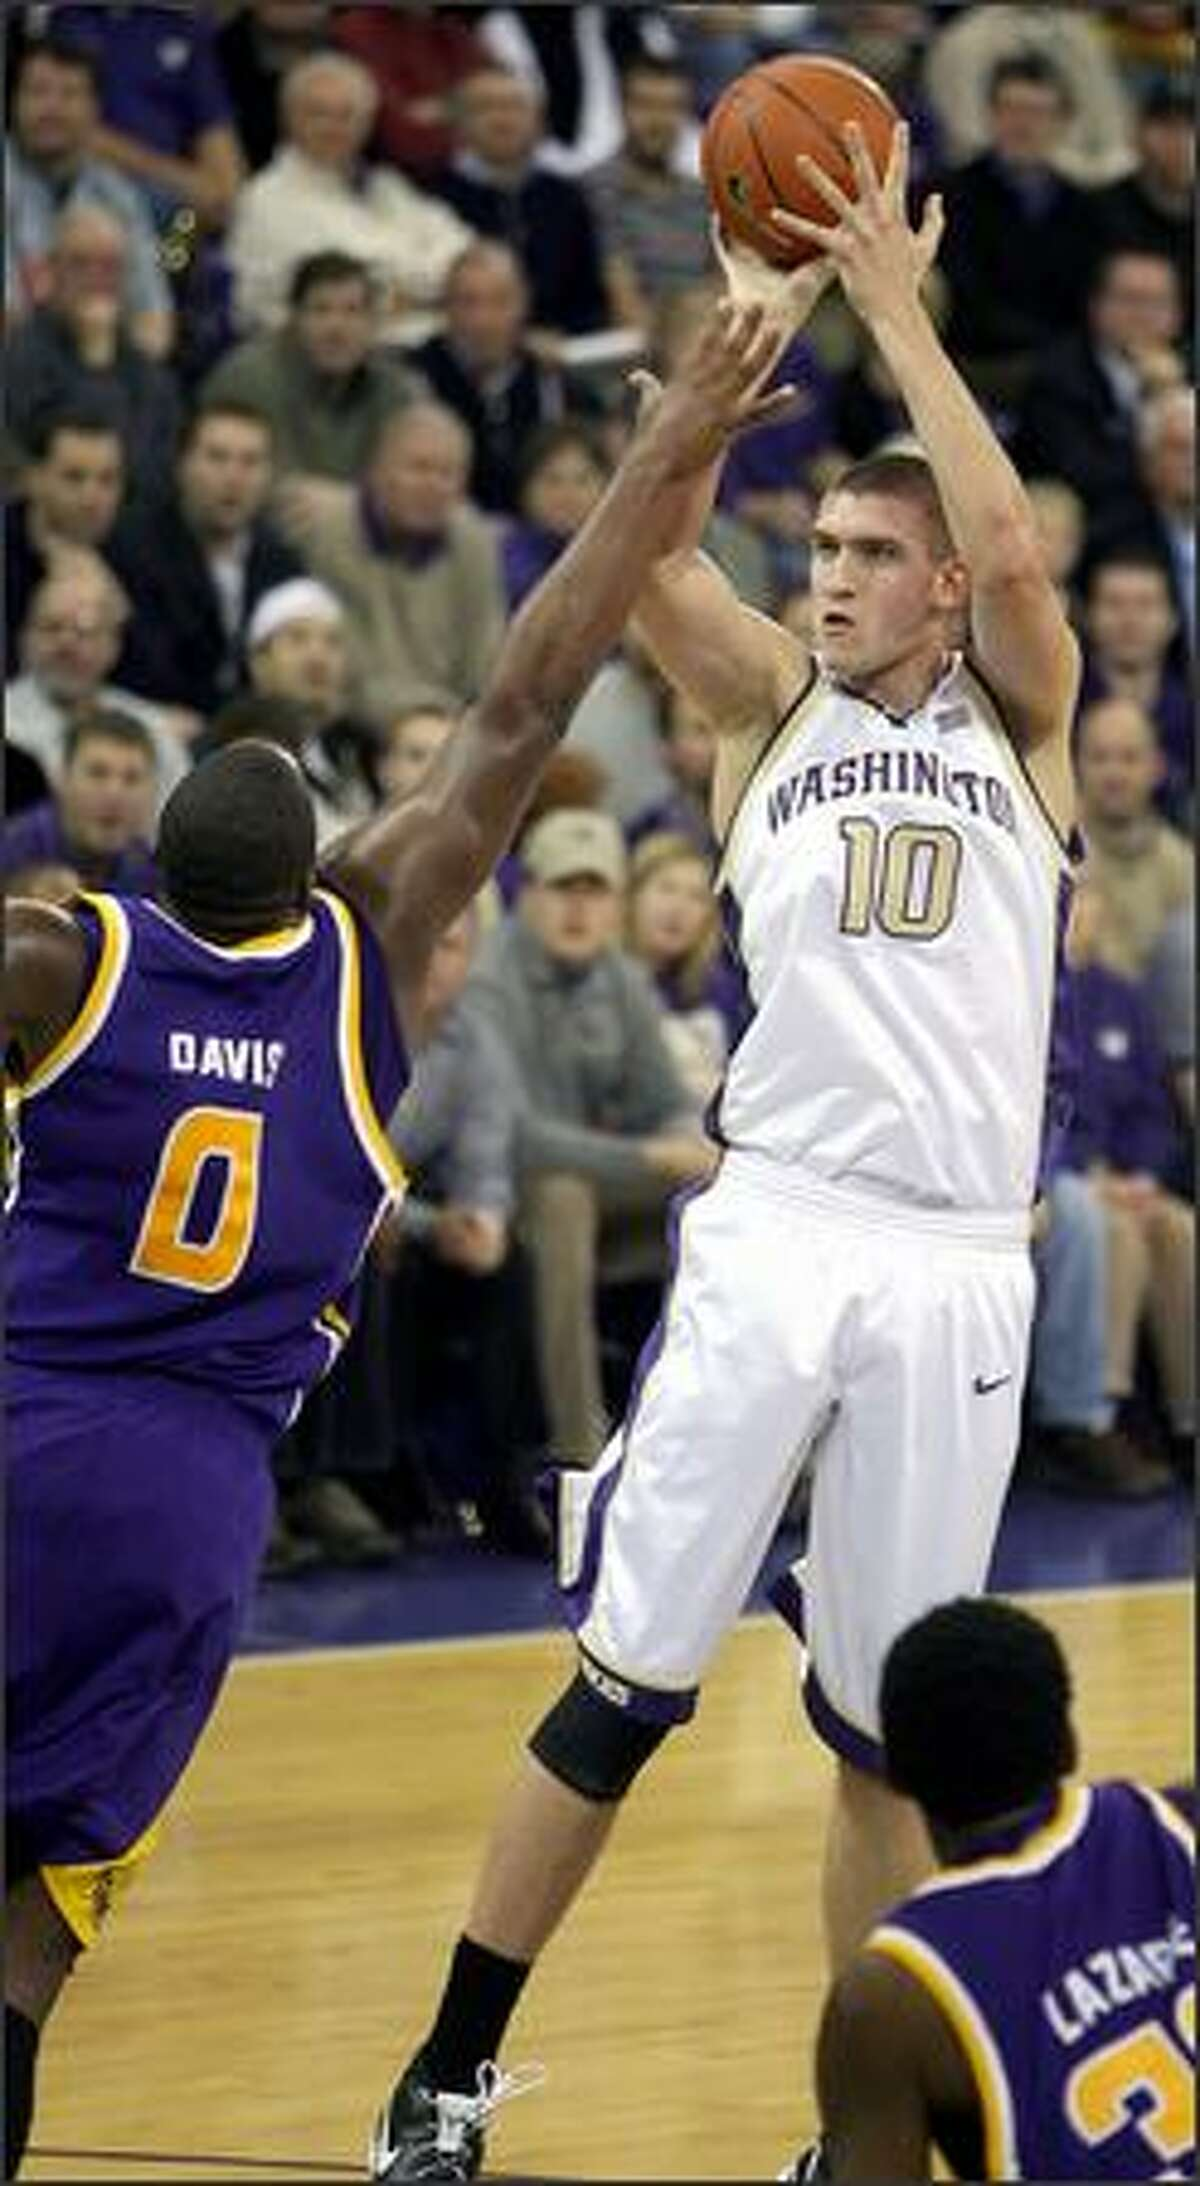 Washington's Spencer Hawes shoots and scores over LSU's Glen Davis during the first half of Wednesday's game. Hawes scored 23 points as the Huskies pulled a 88-72 upset.